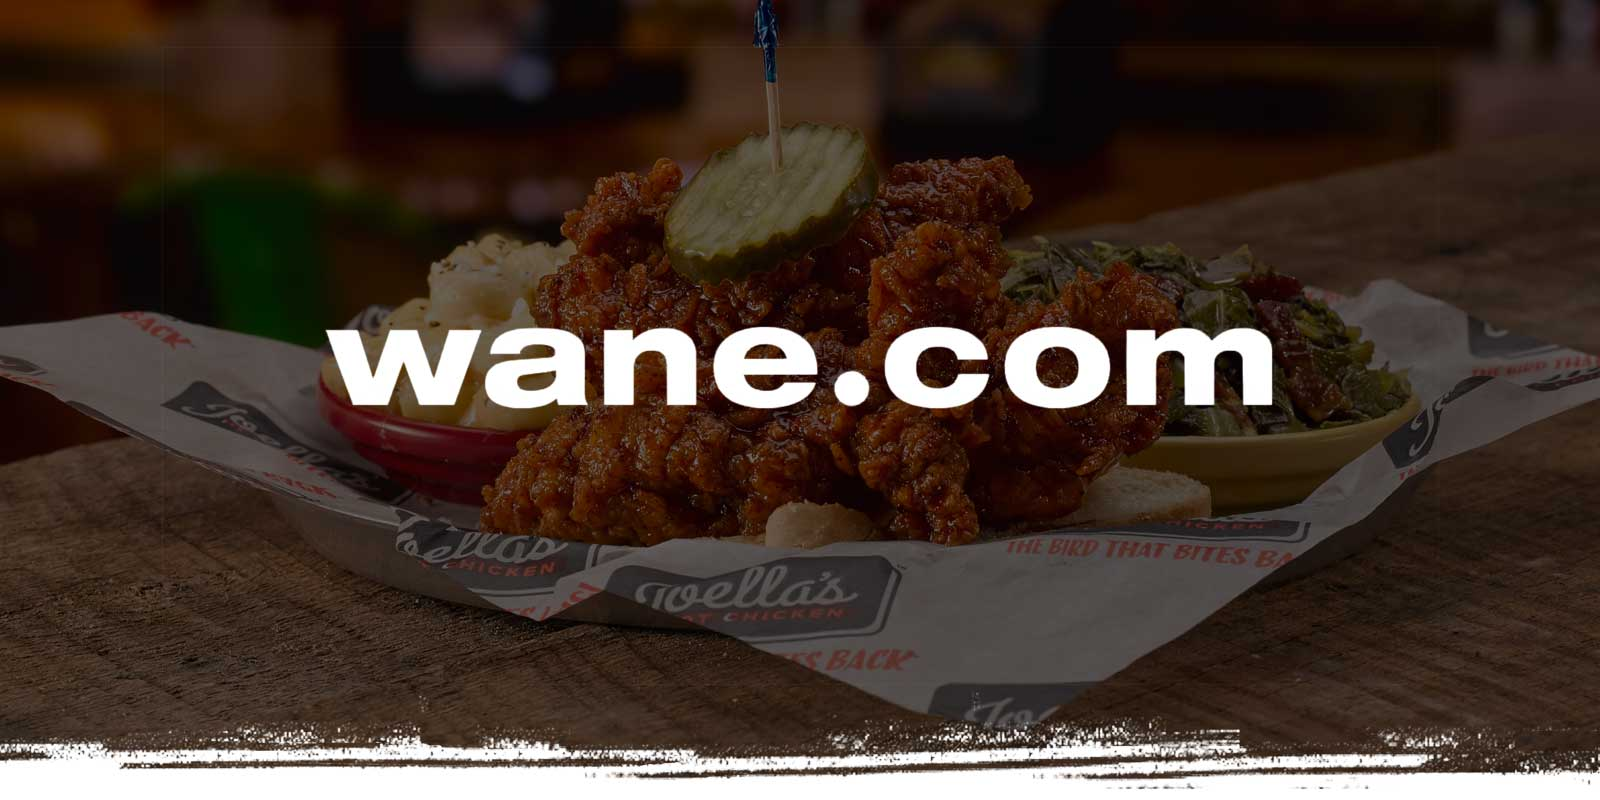 Wane.com logo on Chicken Tenders background